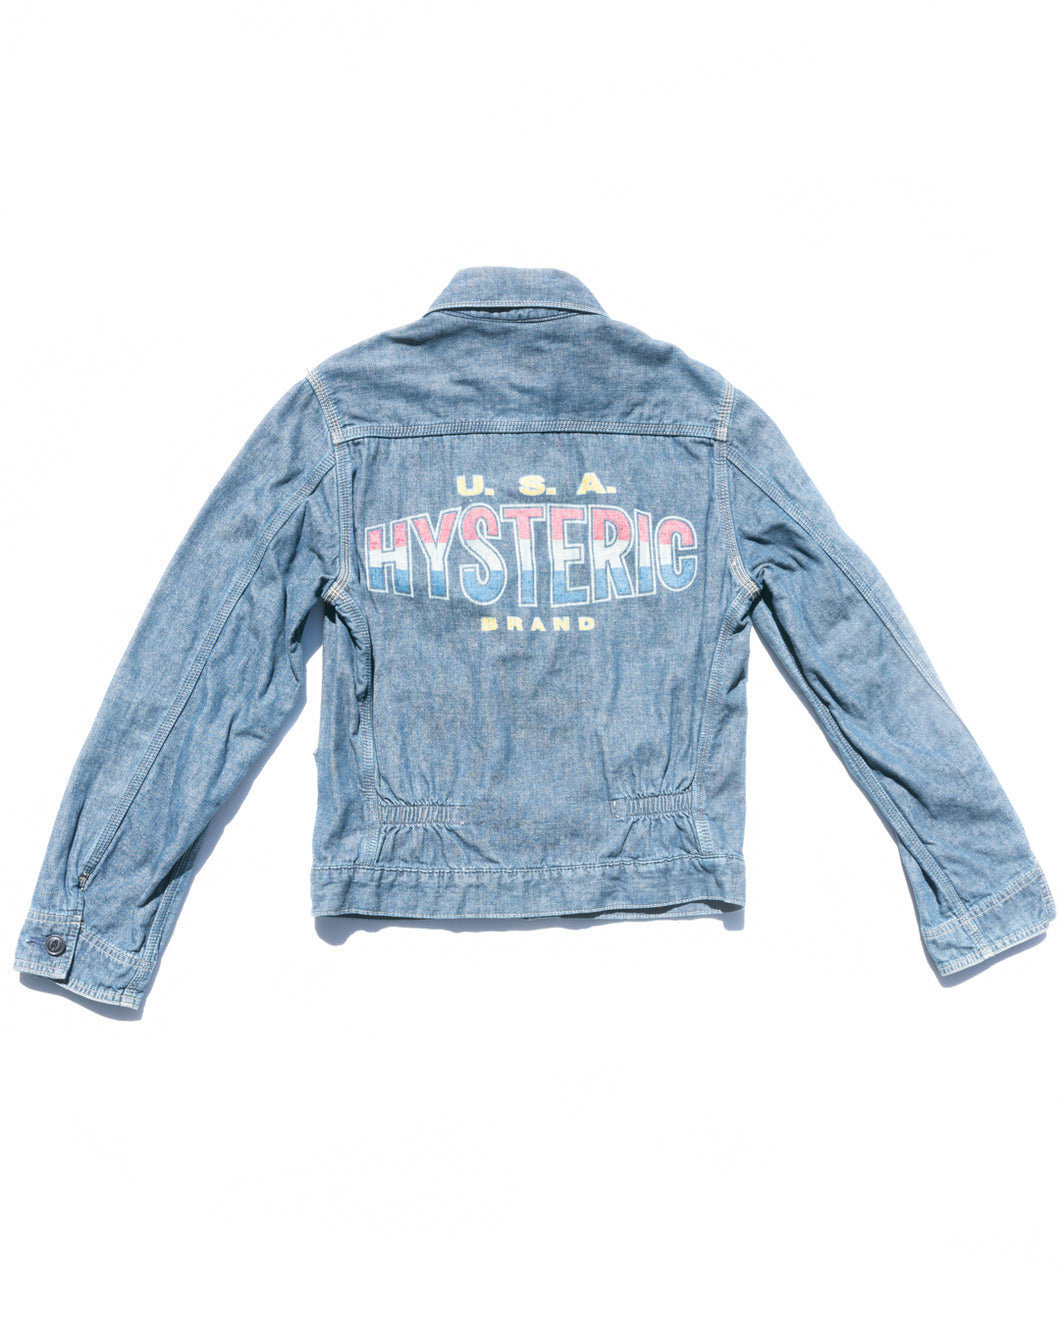 Hysteric Glamour Denim Jacket